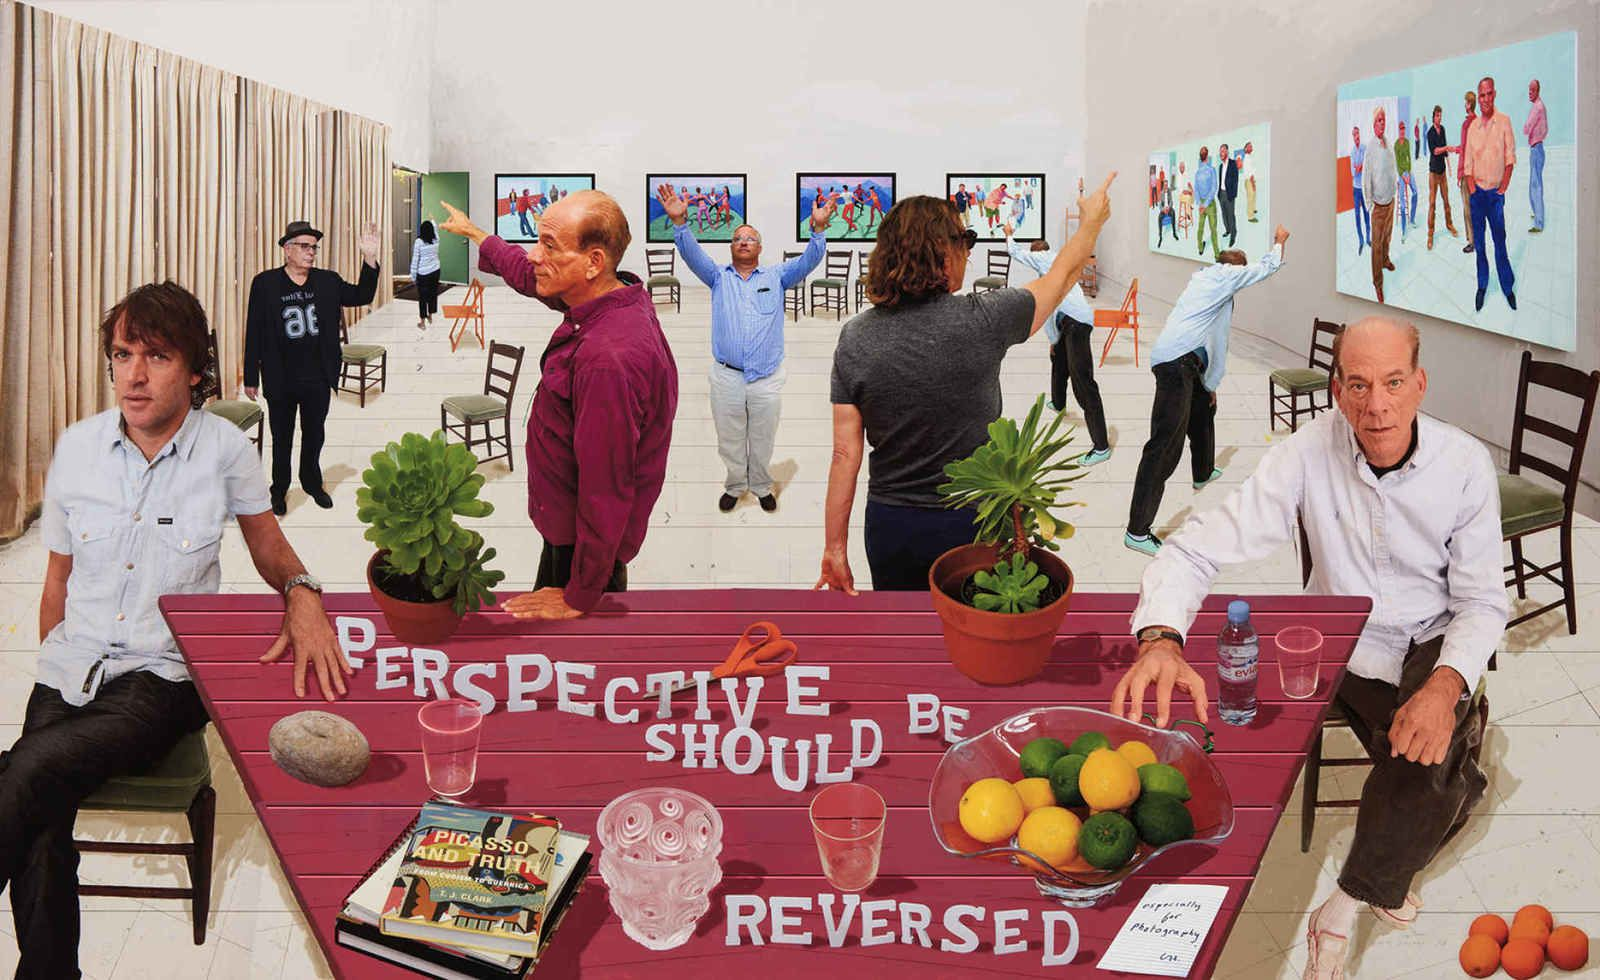 """Perspective Should Be Reversed"" de David HOCKNEY"